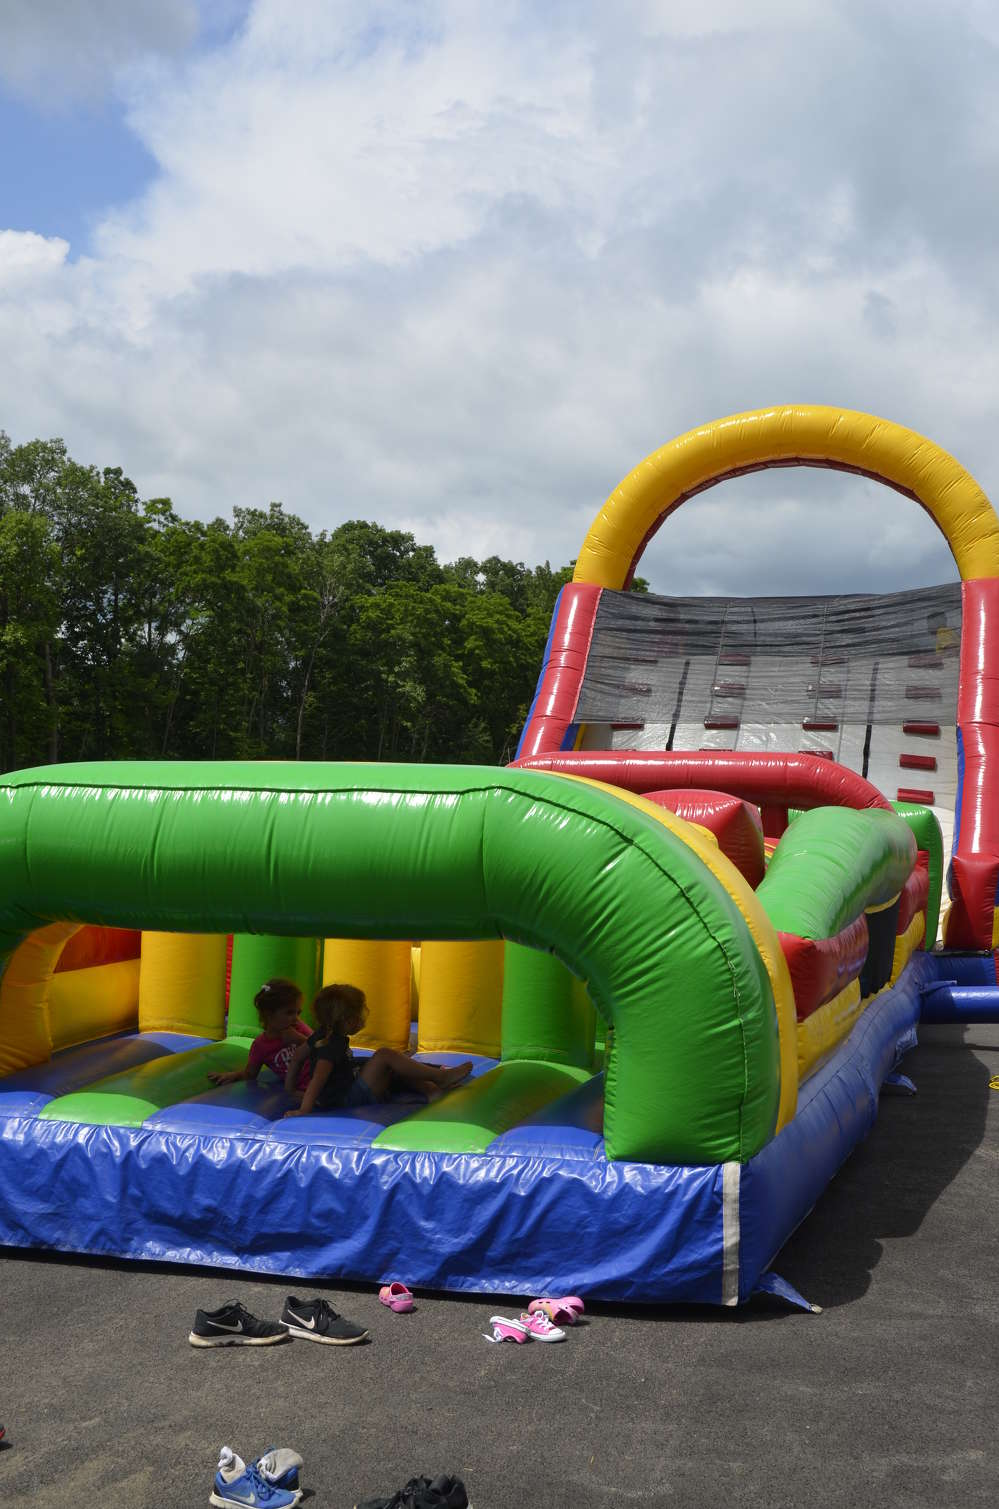 Employees' children enjoyed the bounce house.